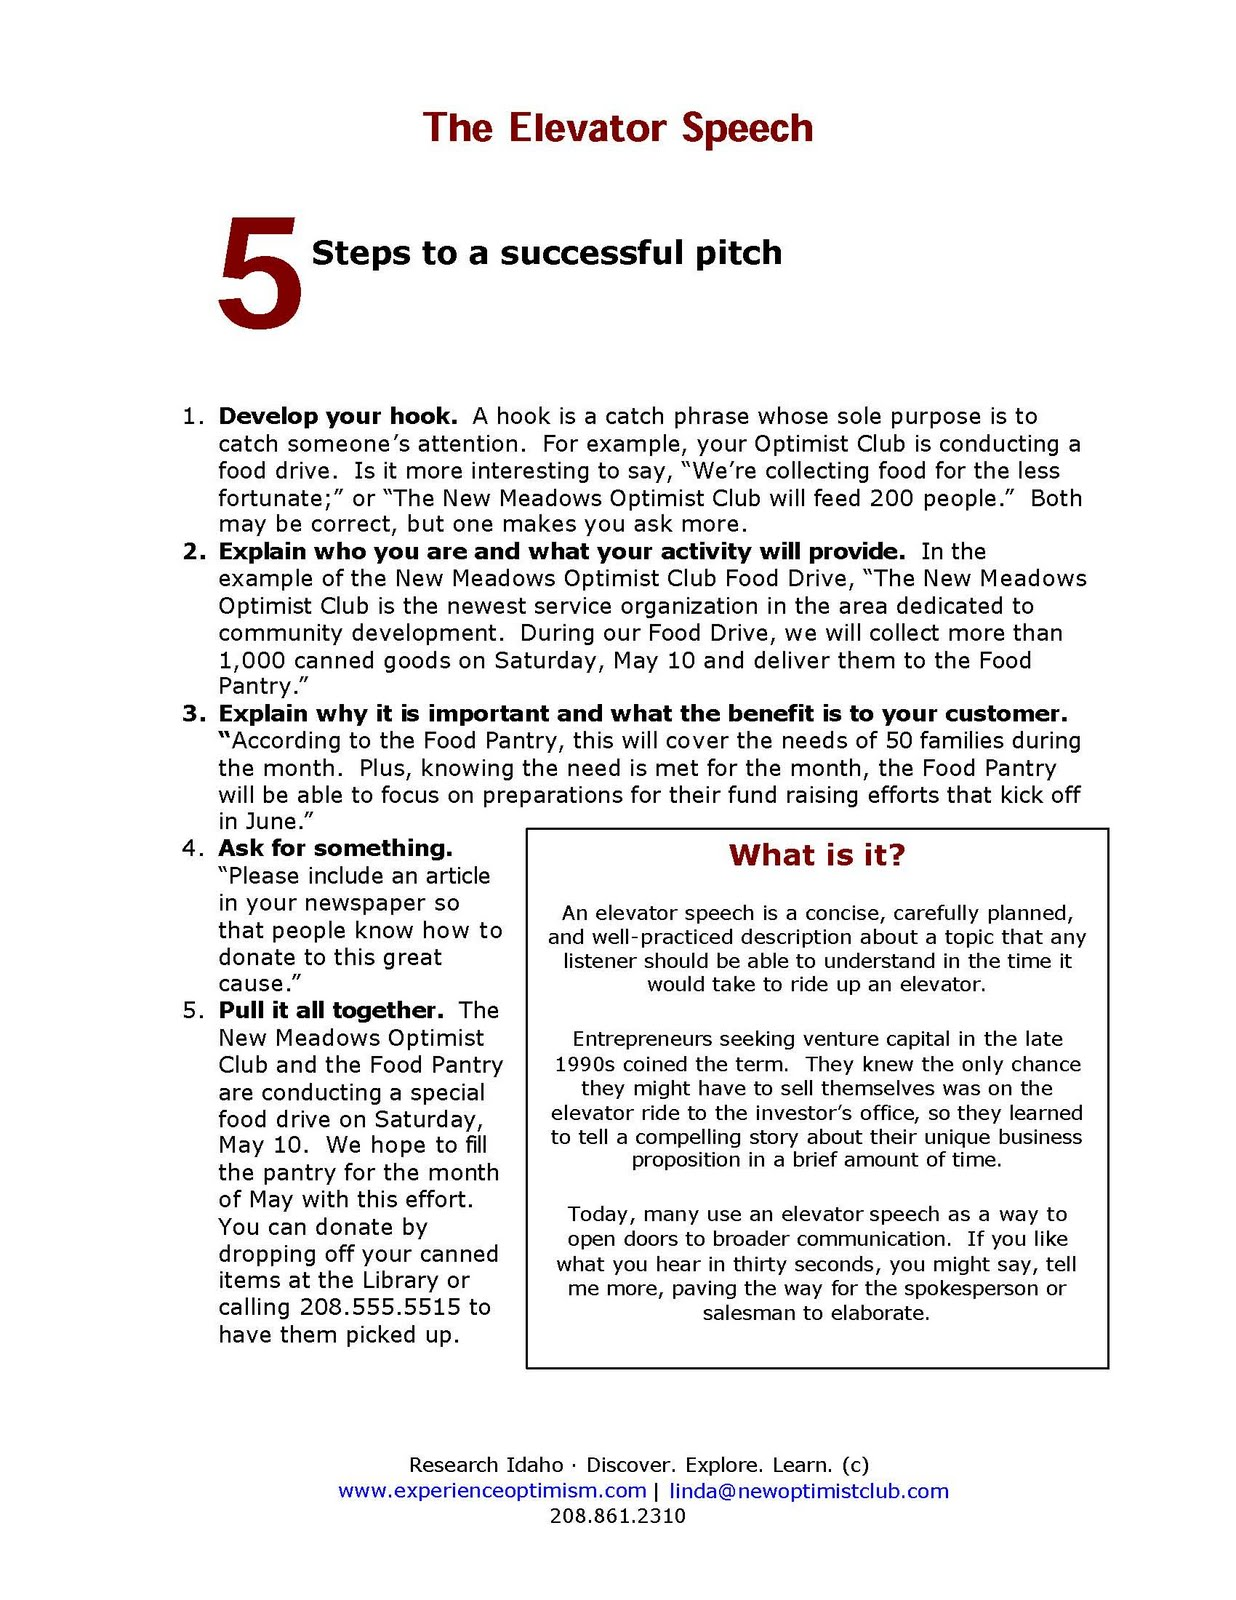 Example Elevator Pitch certified public accountant resume job – Elevator Speech Examples